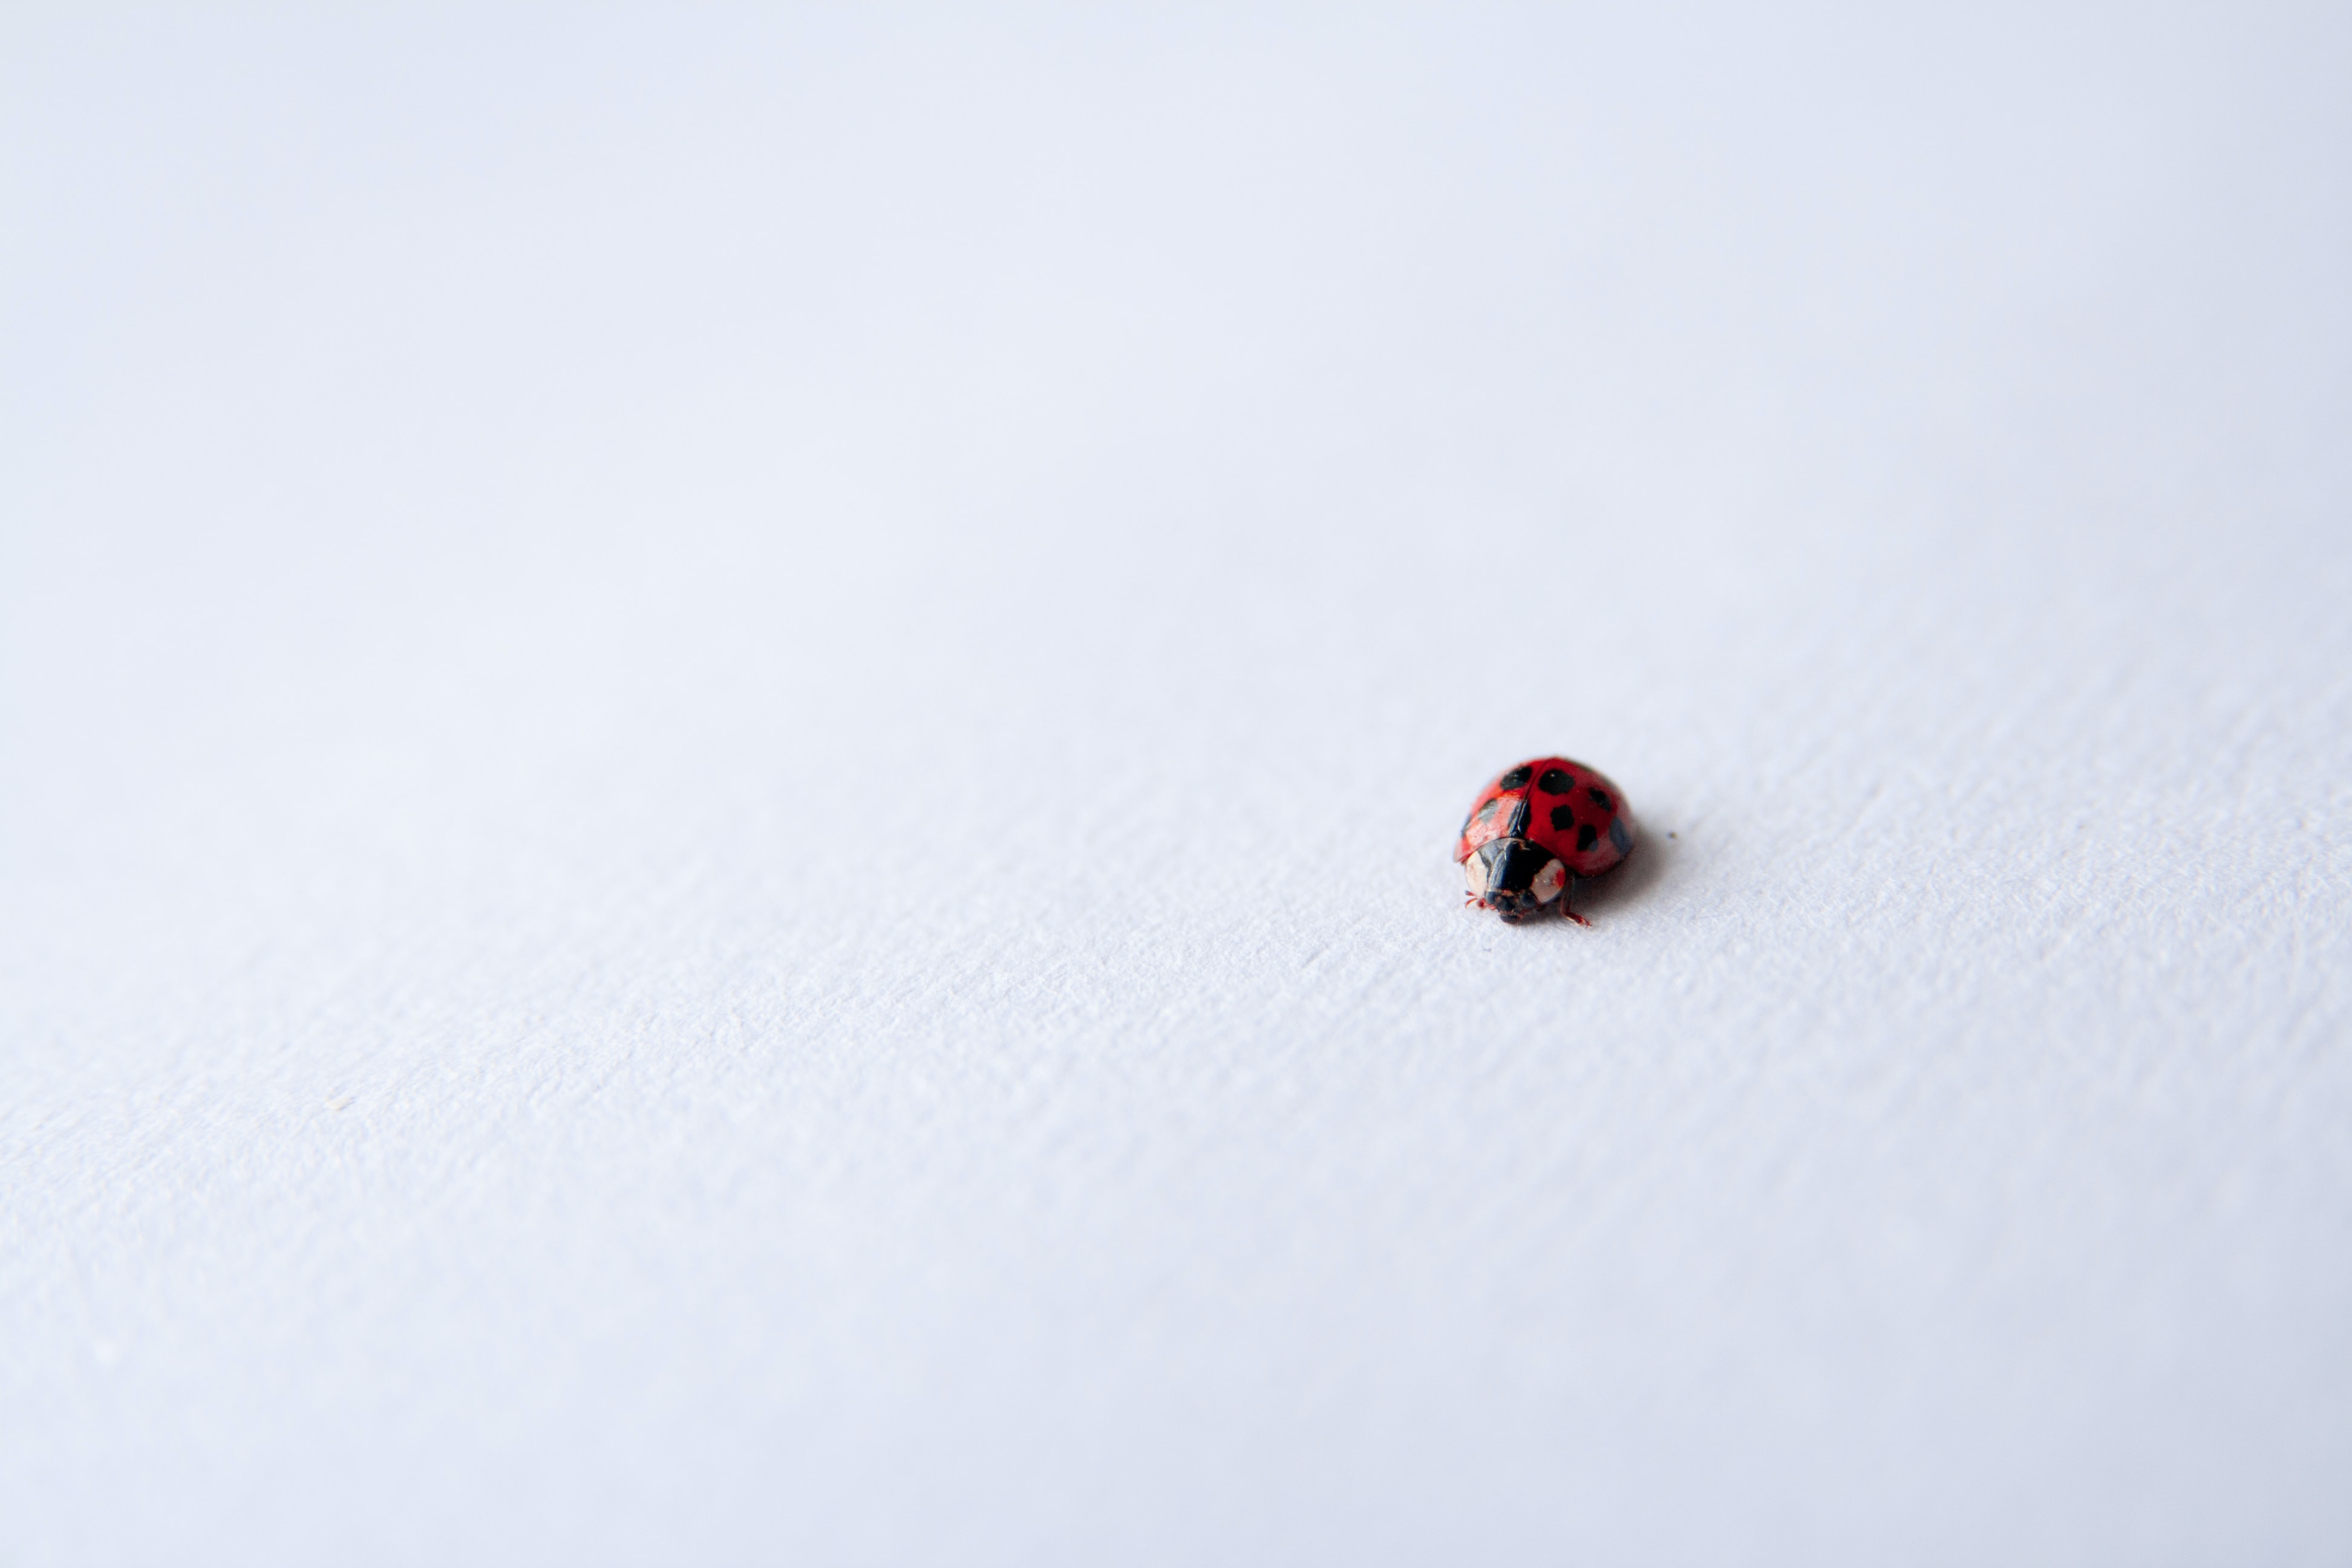 A macro shot of a ladybug on a smooth white surface